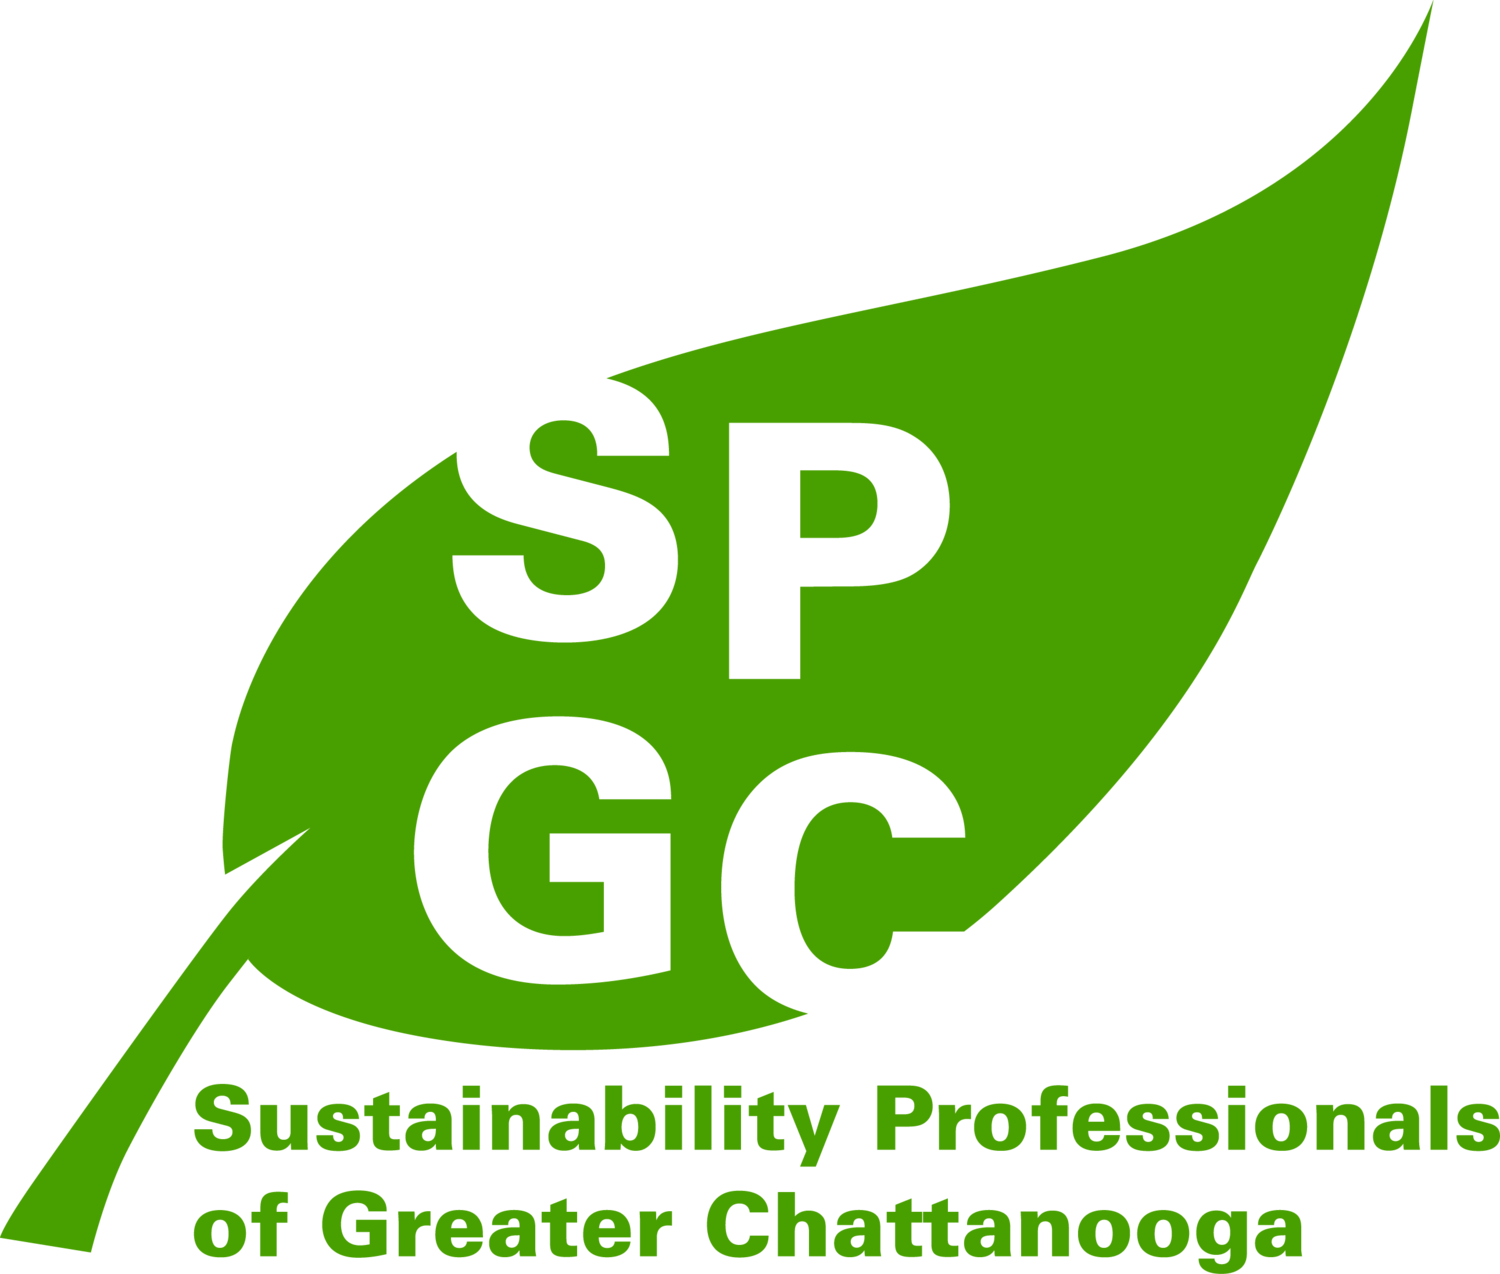 Sustainability Professionals of Greater Chattanooga